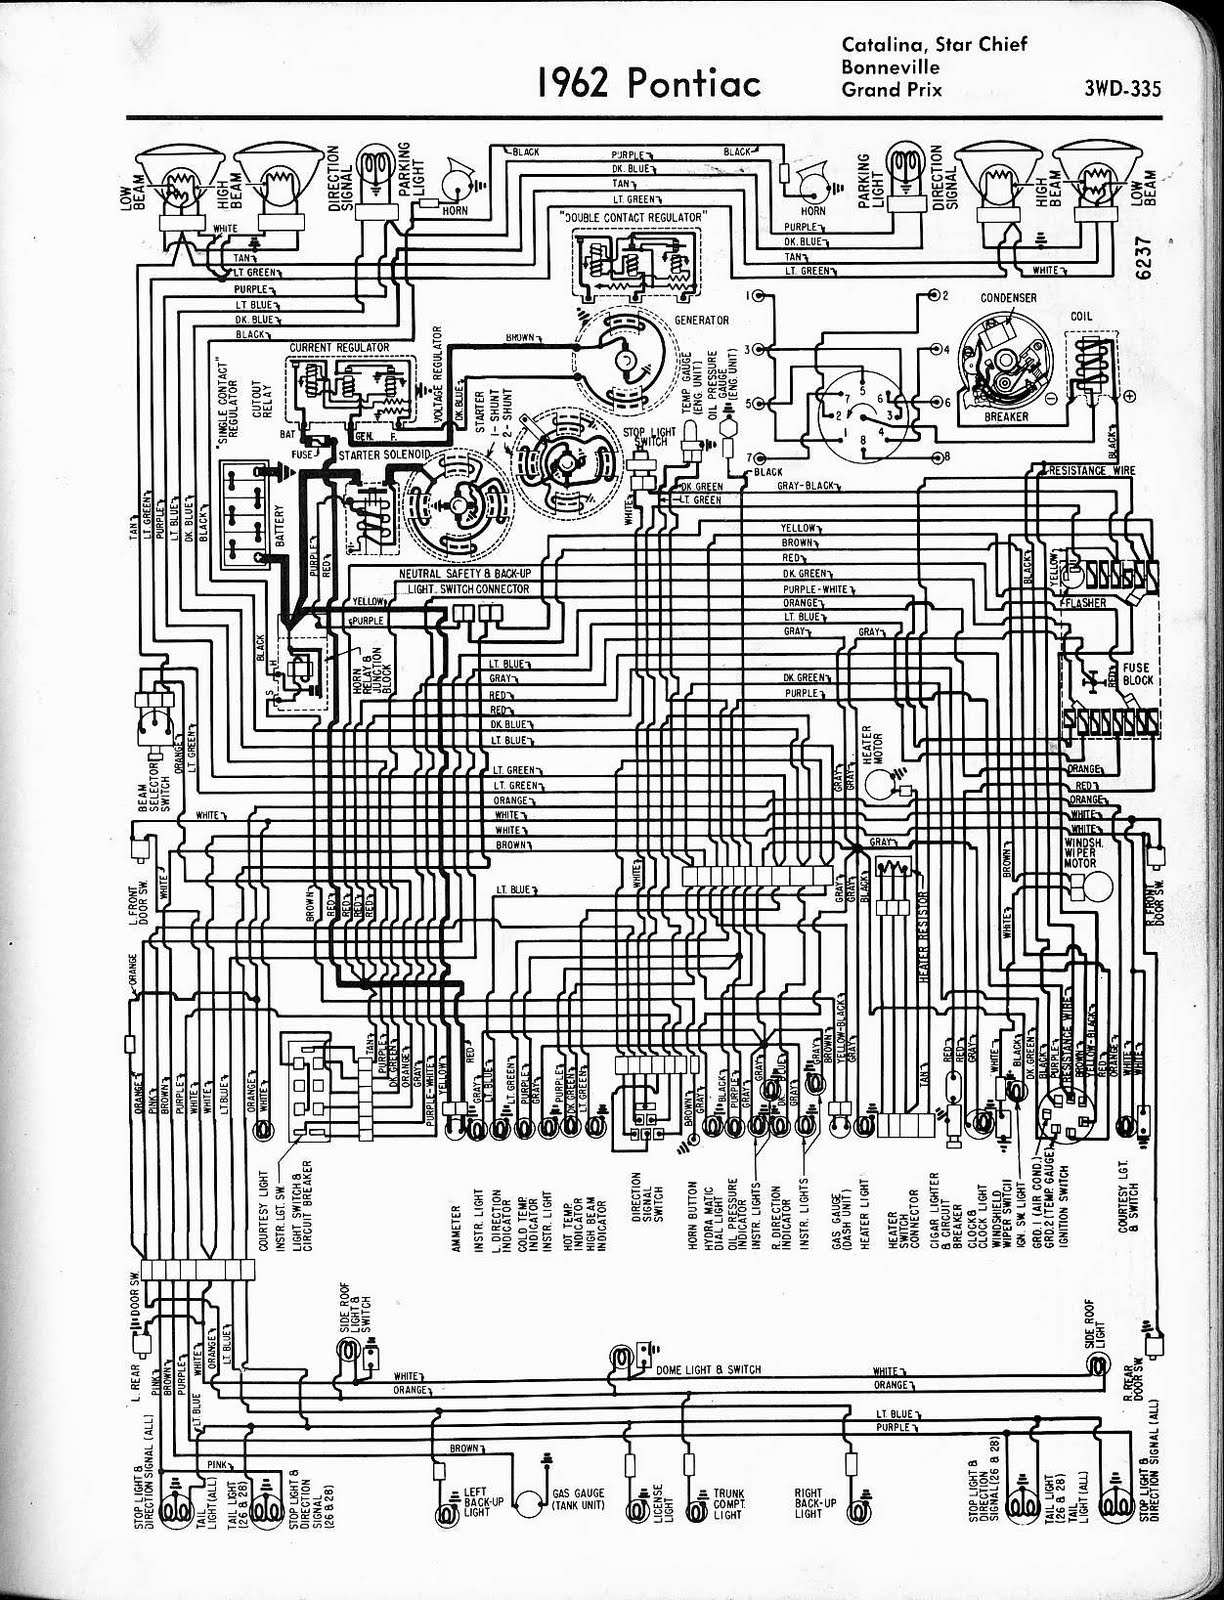 Wiring Diagram For 2002 Pontiac Bonneville Library 2005 Buick Lesabre Door